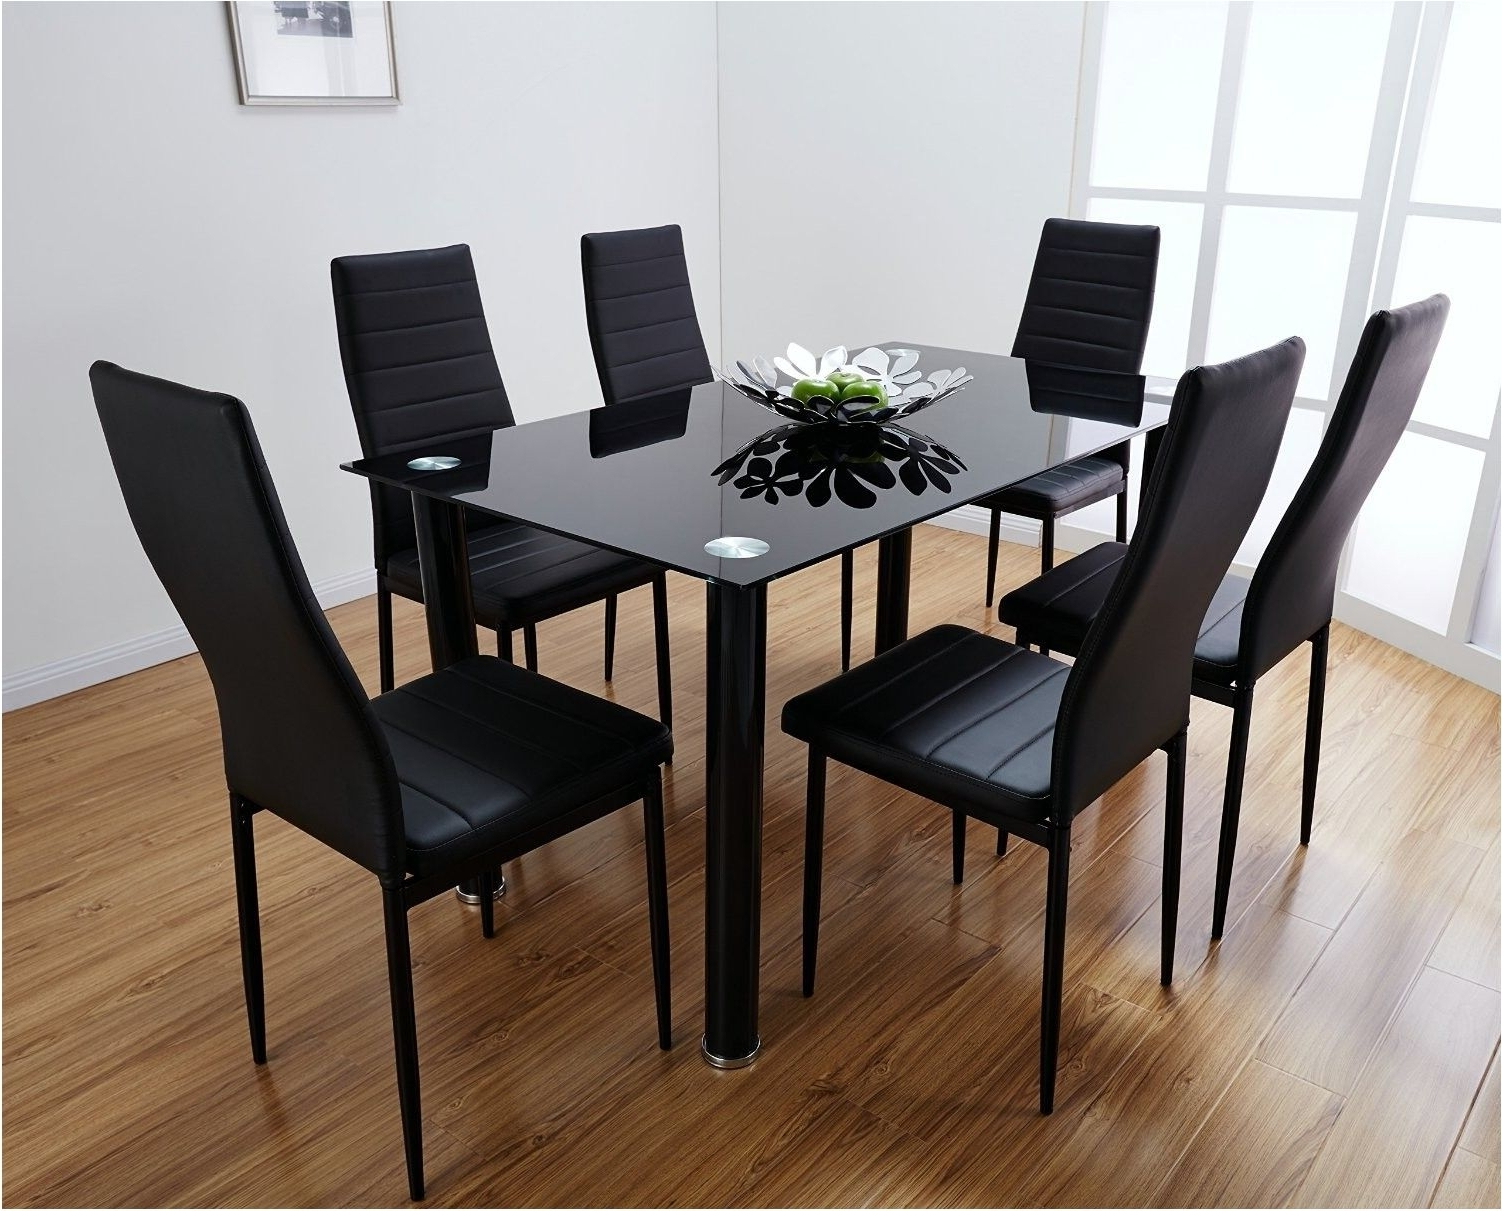 Most Recent Glass Dining Tables With 6 Chairs Throughout Delightful Extending Black Glass Dining Table And 6 Chairs Set Table (View 15 of 25)